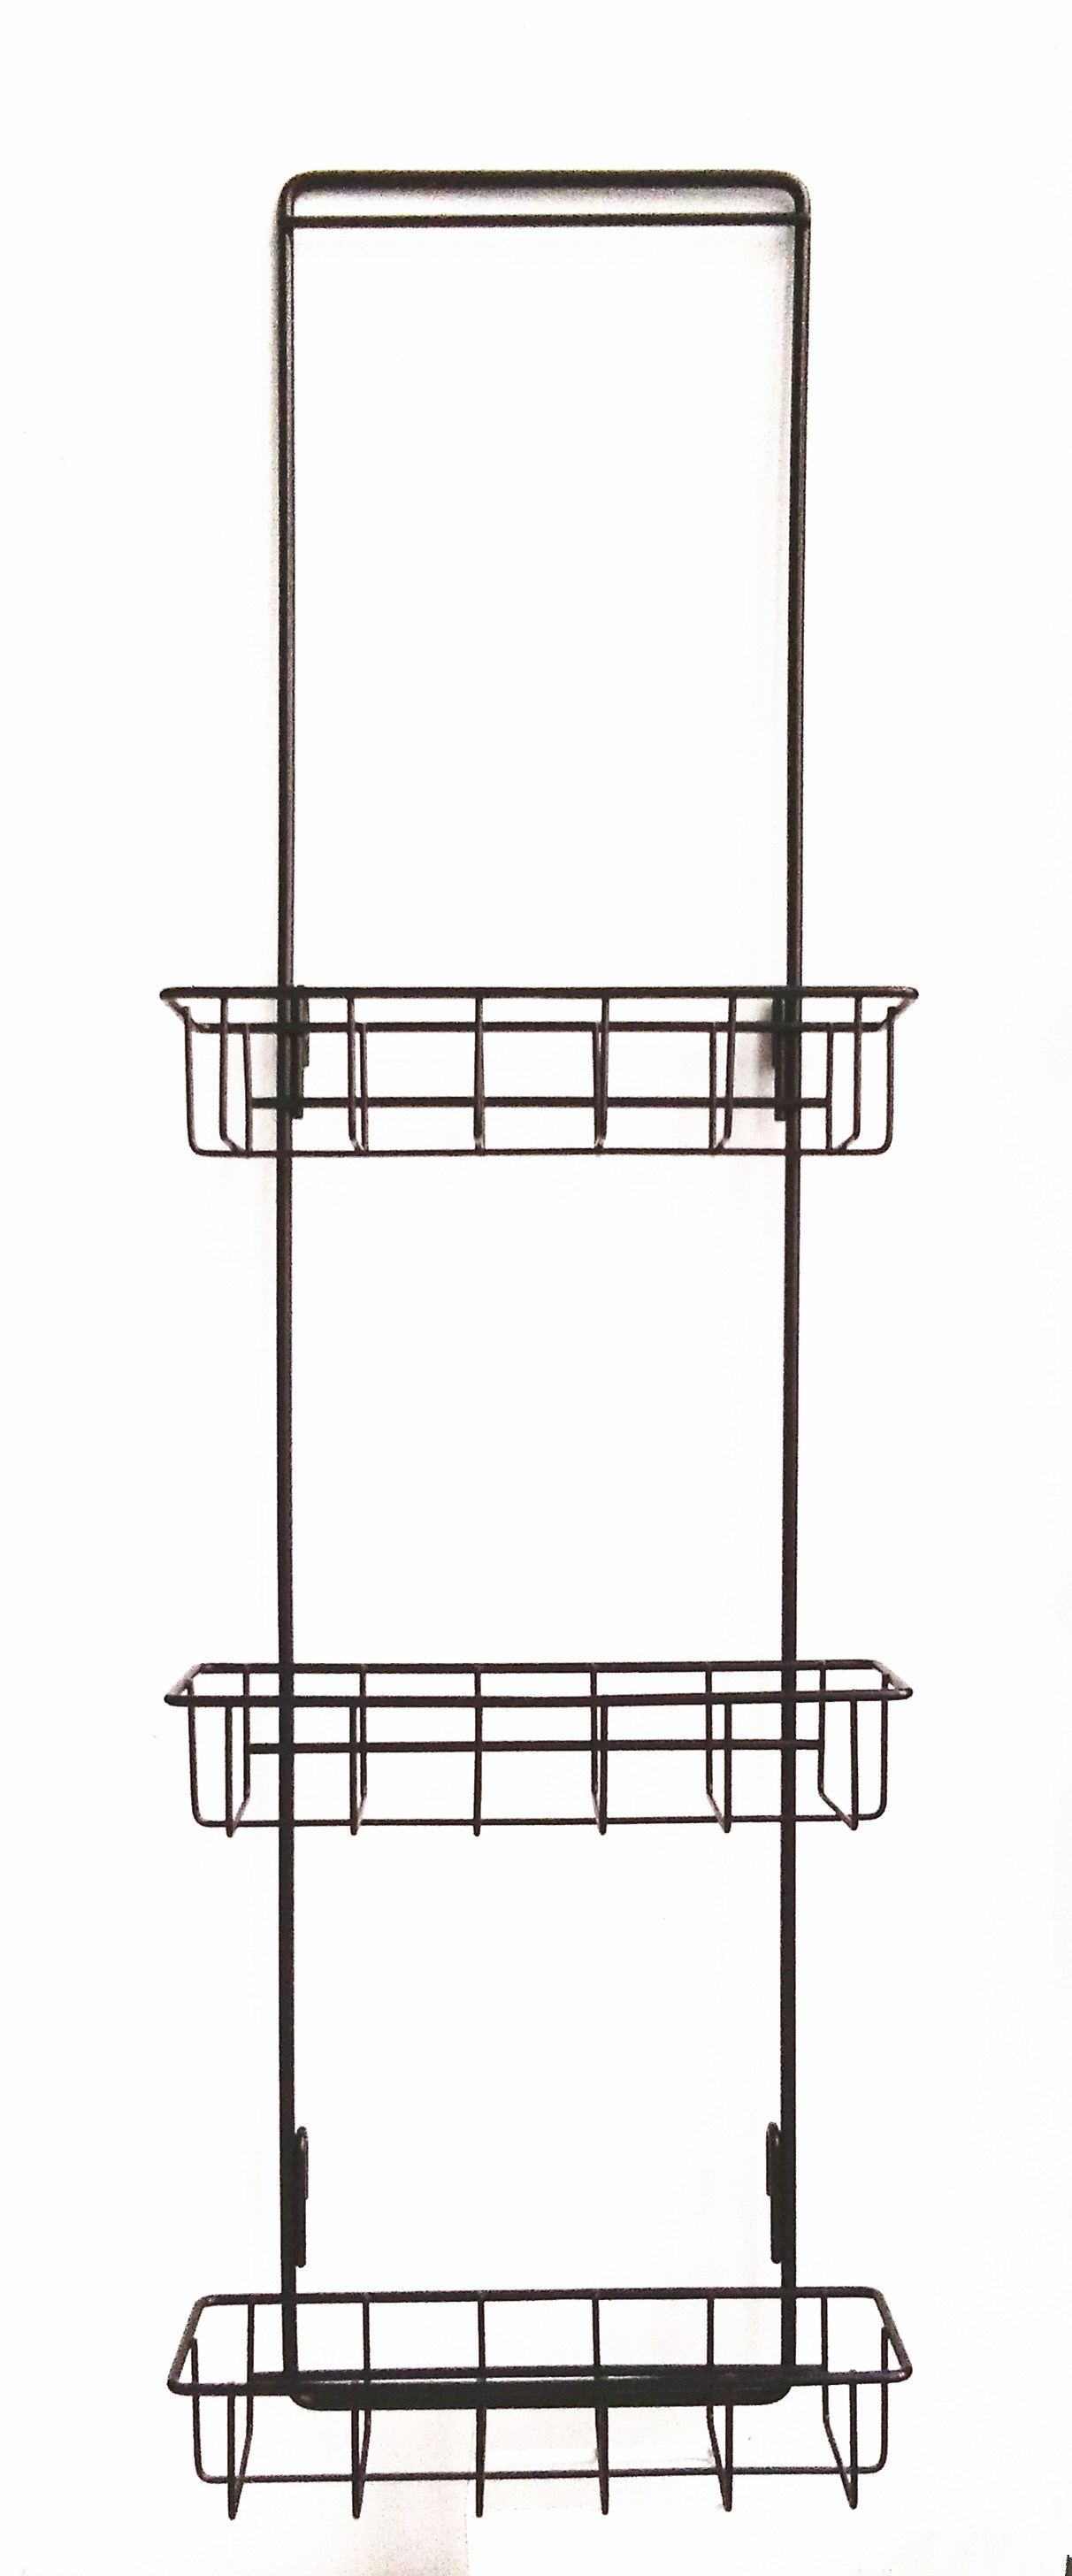 Hanging Supermarket Shelf, Promotional Shelves, Display Rack